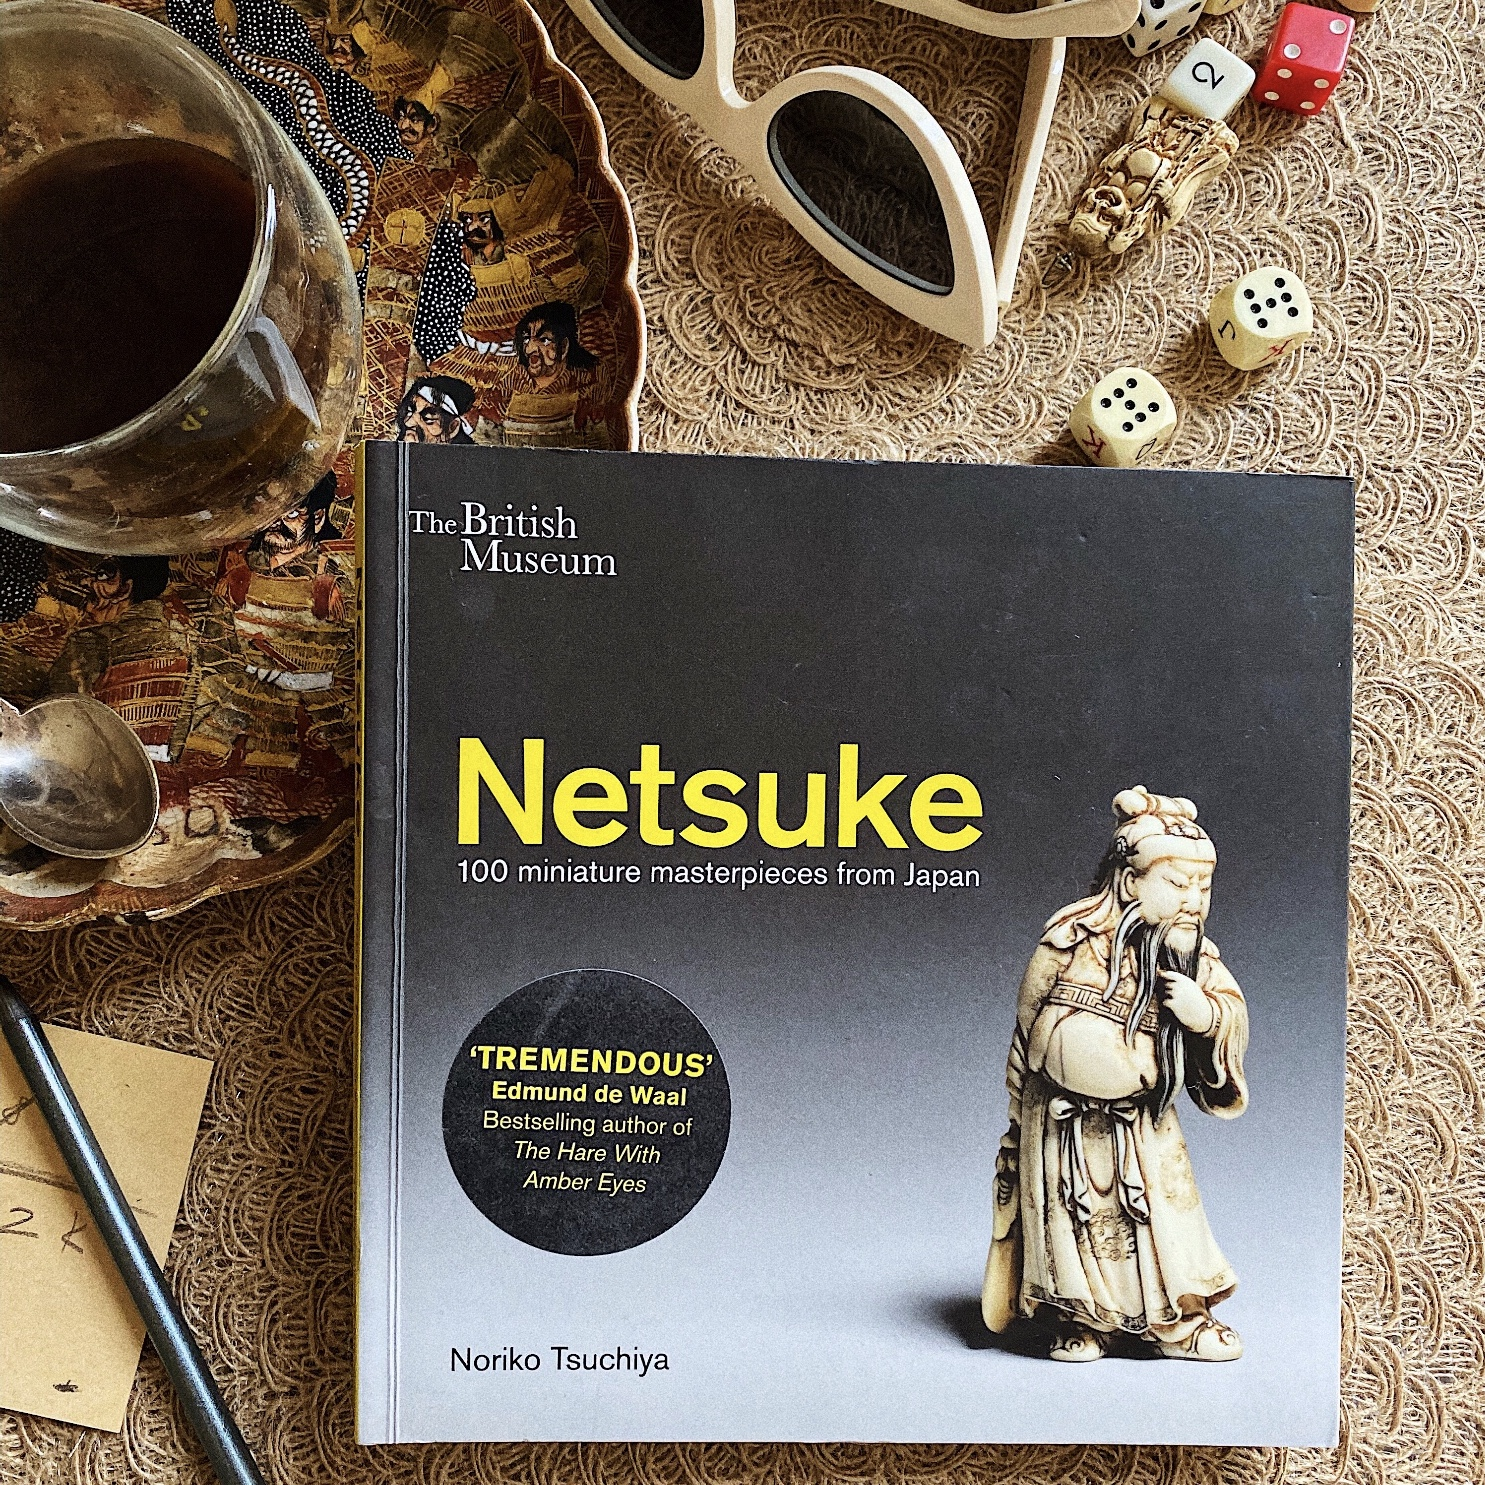 a book about netsuke